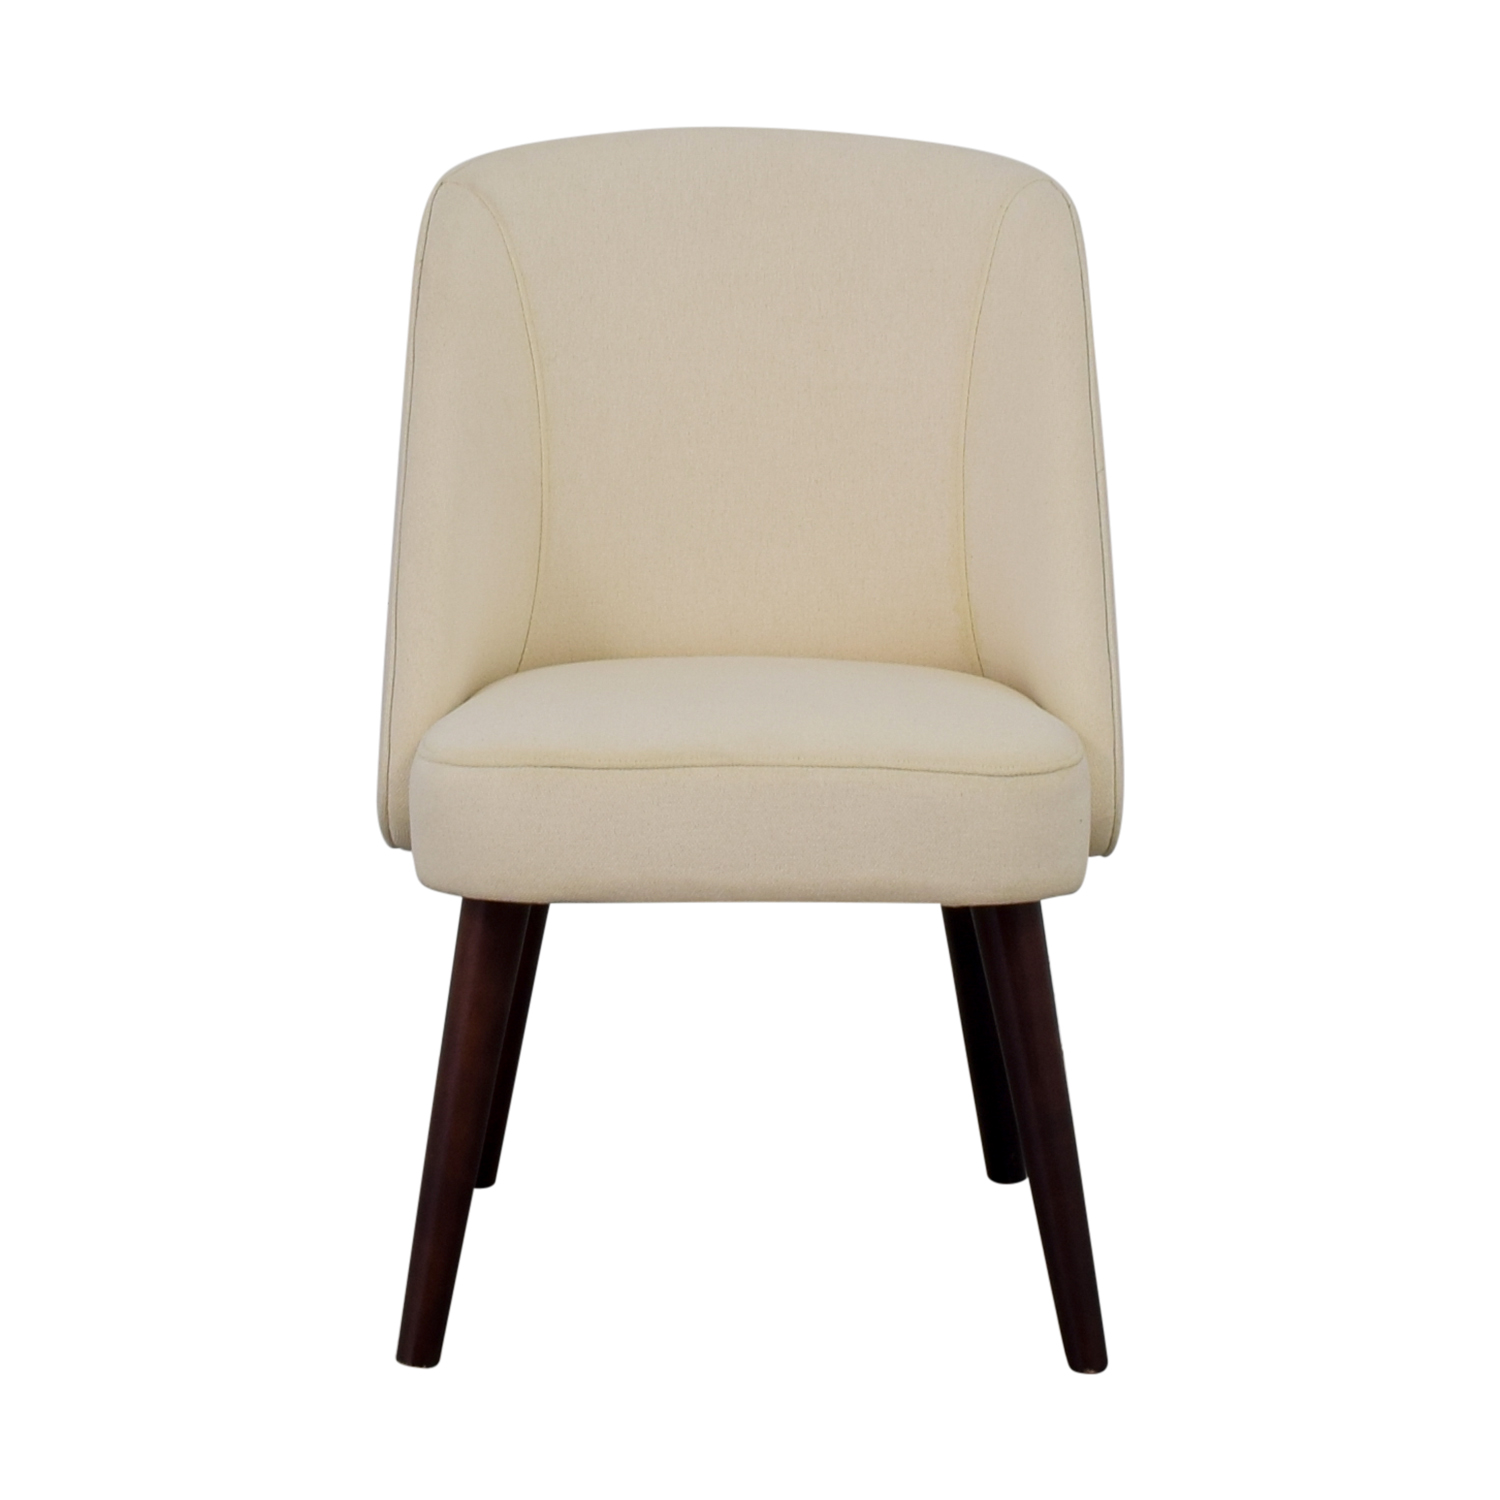 Room & Board Room & Board White Accent Chair coupon